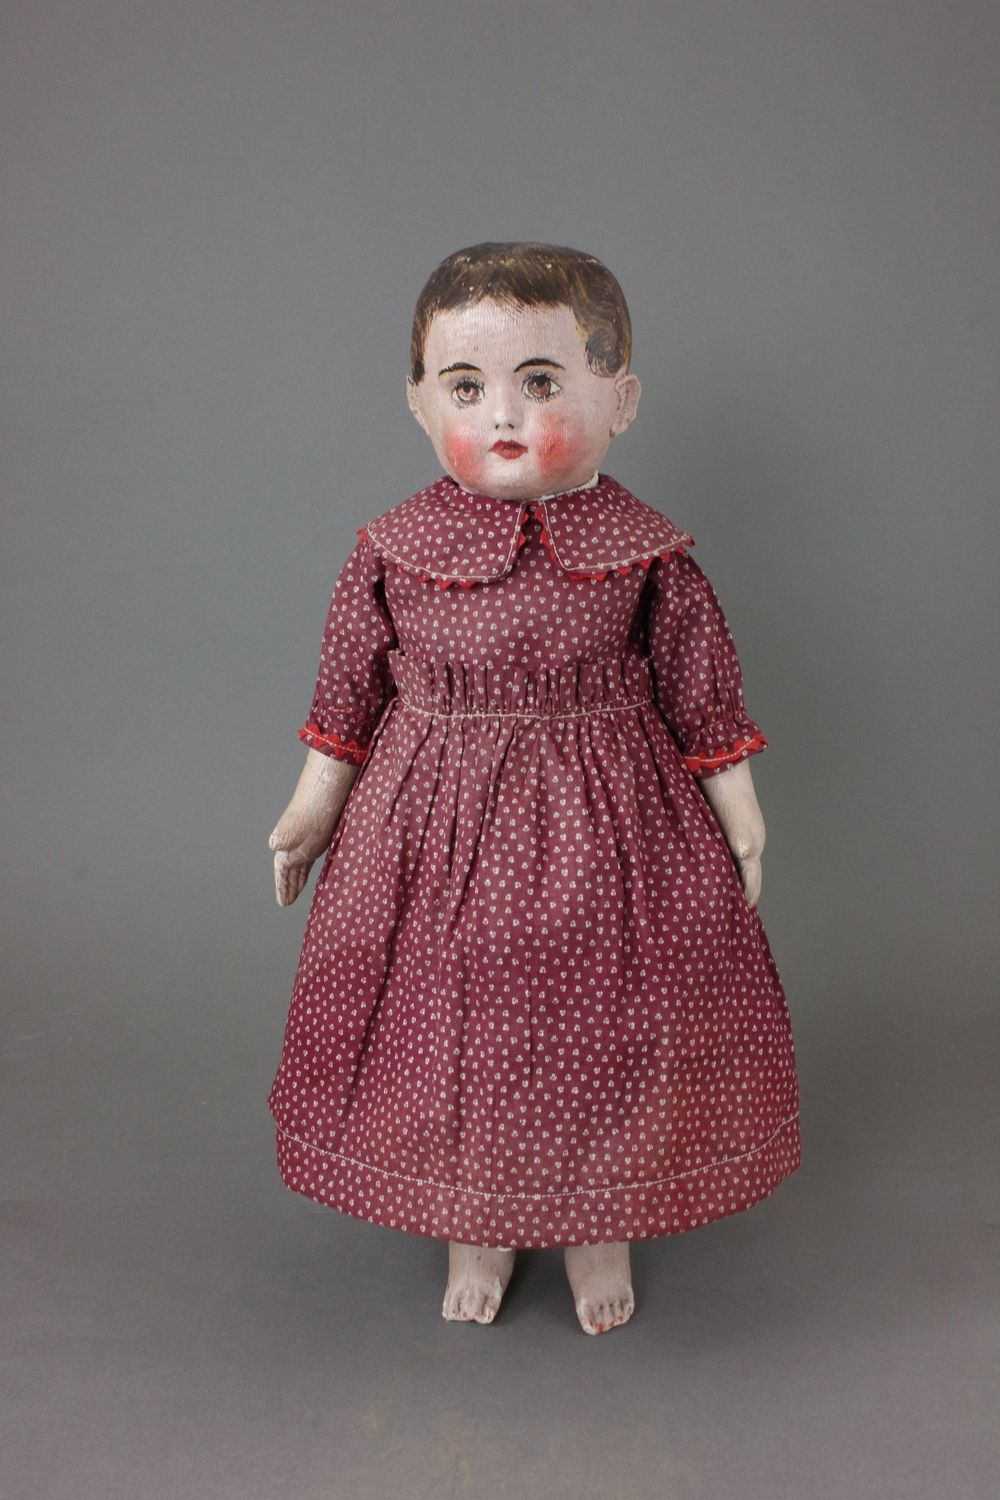 Doll Auctions — Apple Tree Auction Center